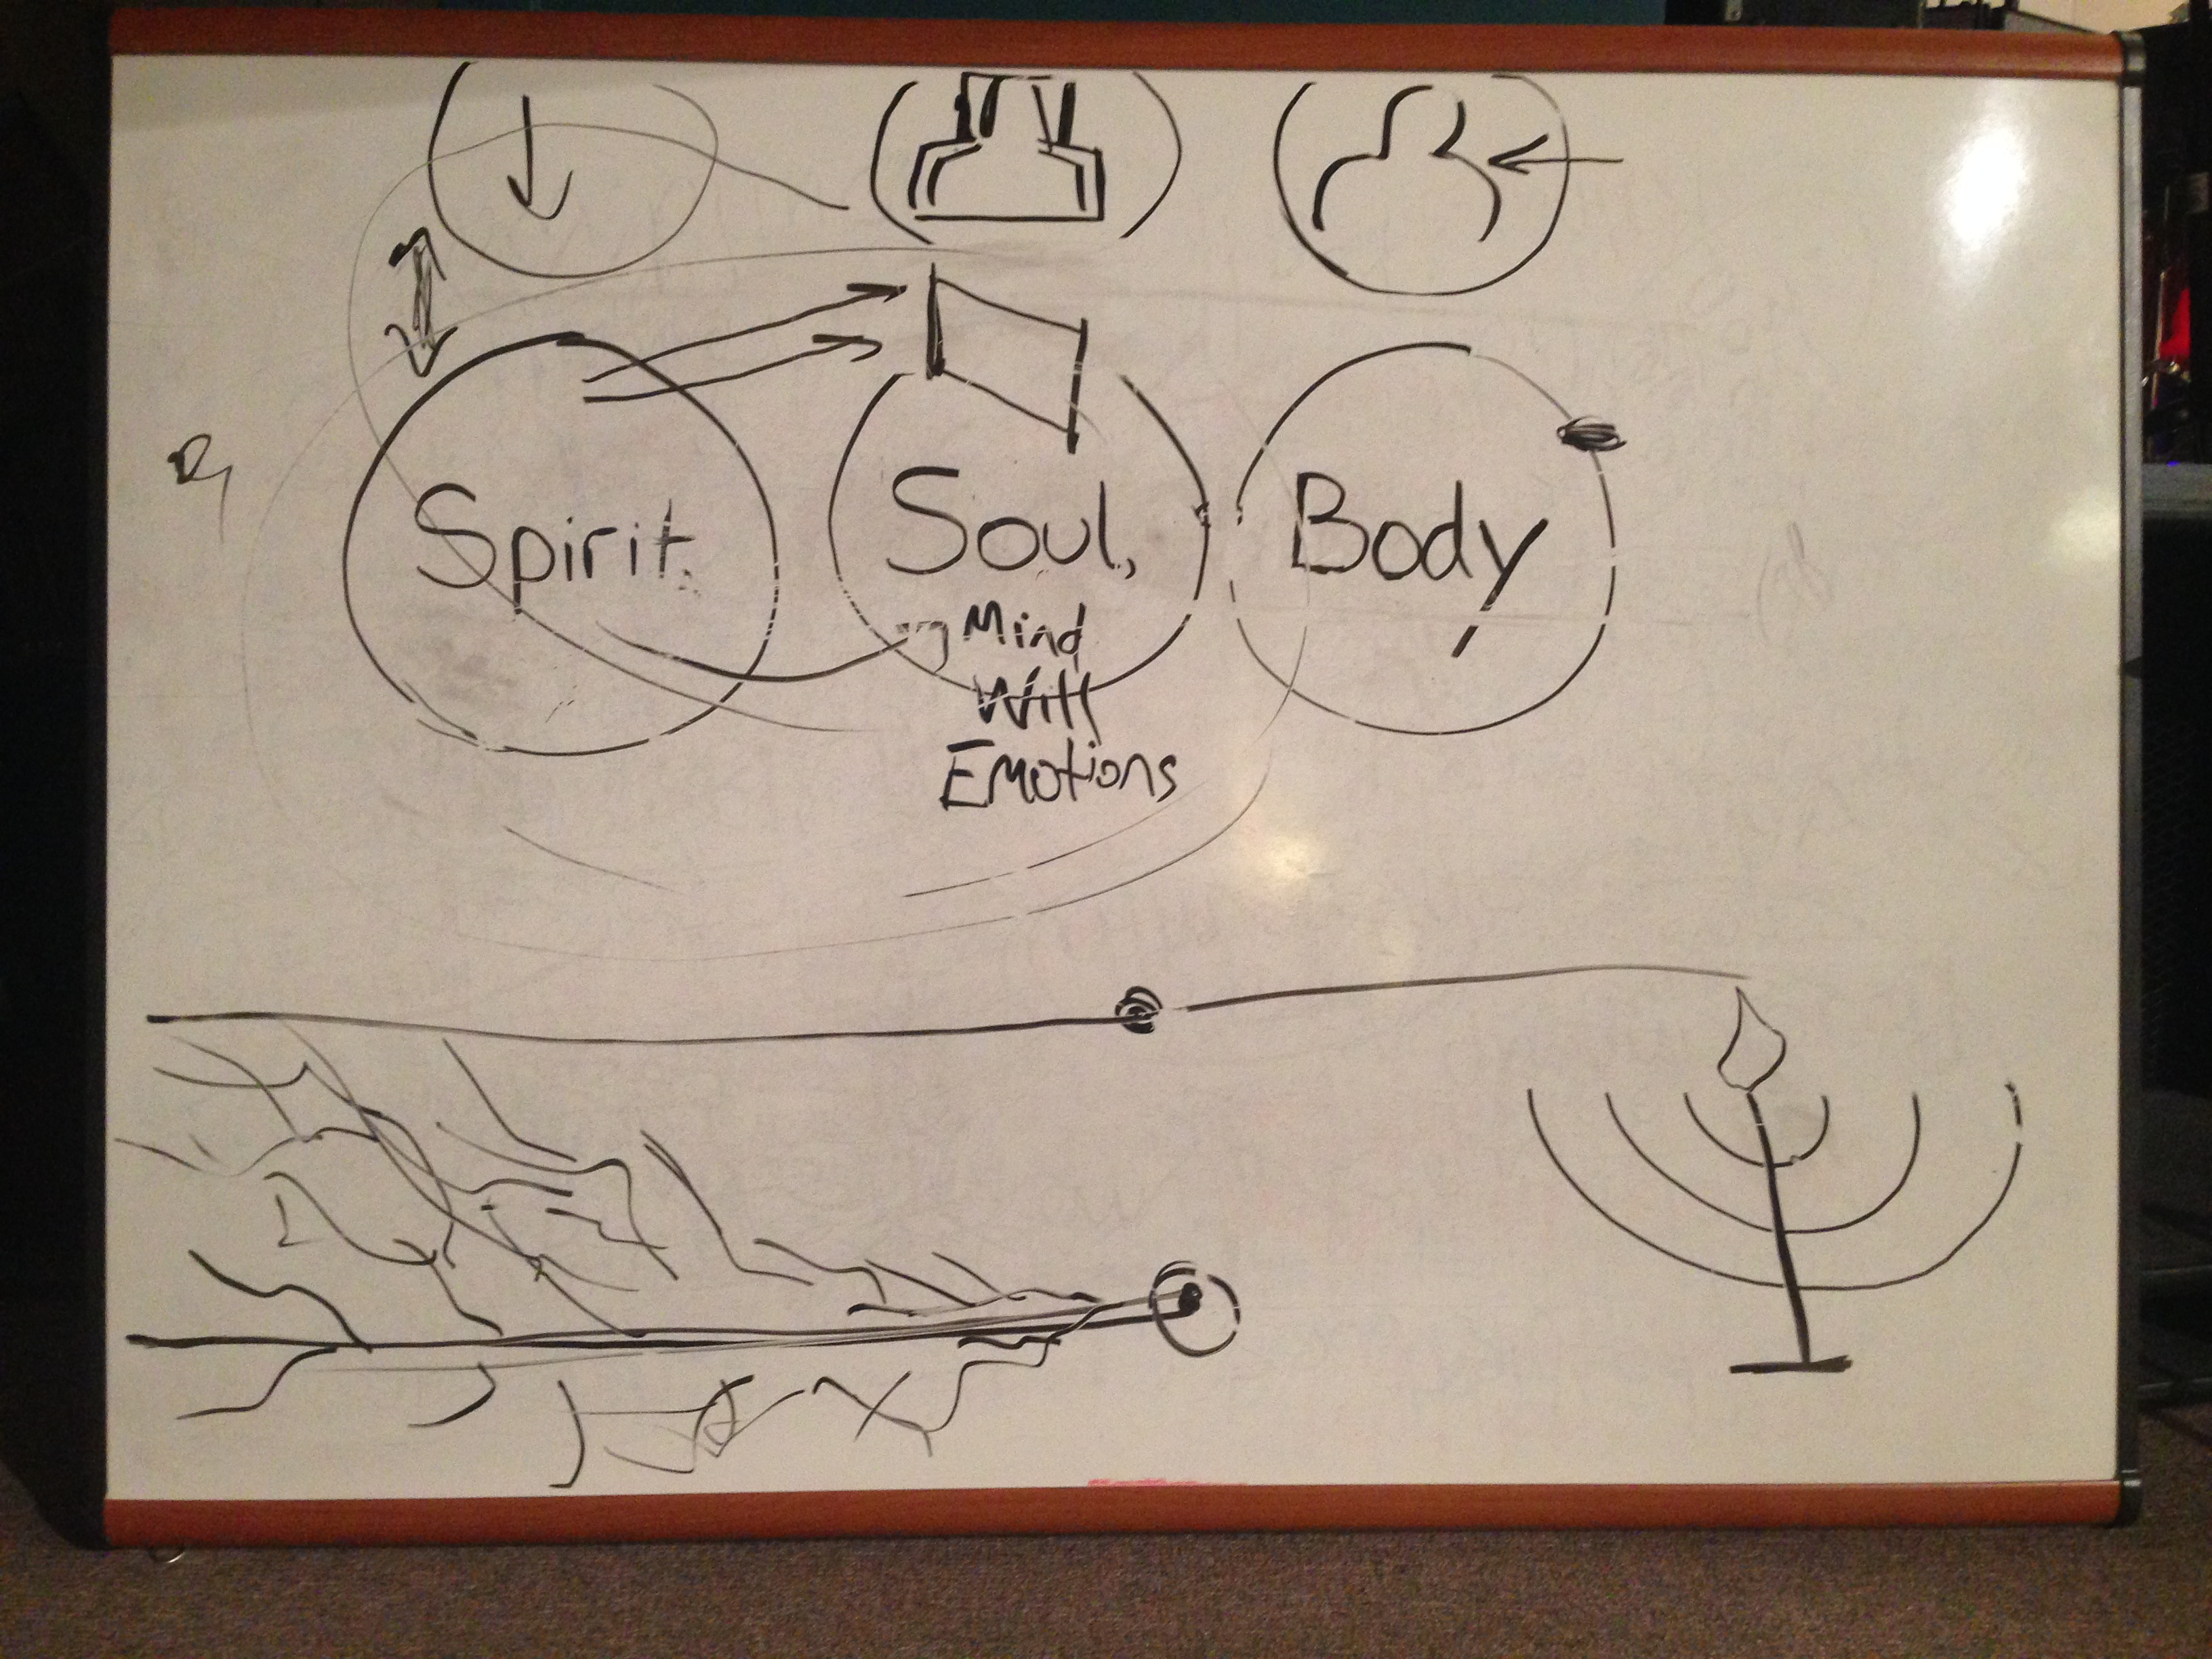 Health and the Body, Soul & Spirit